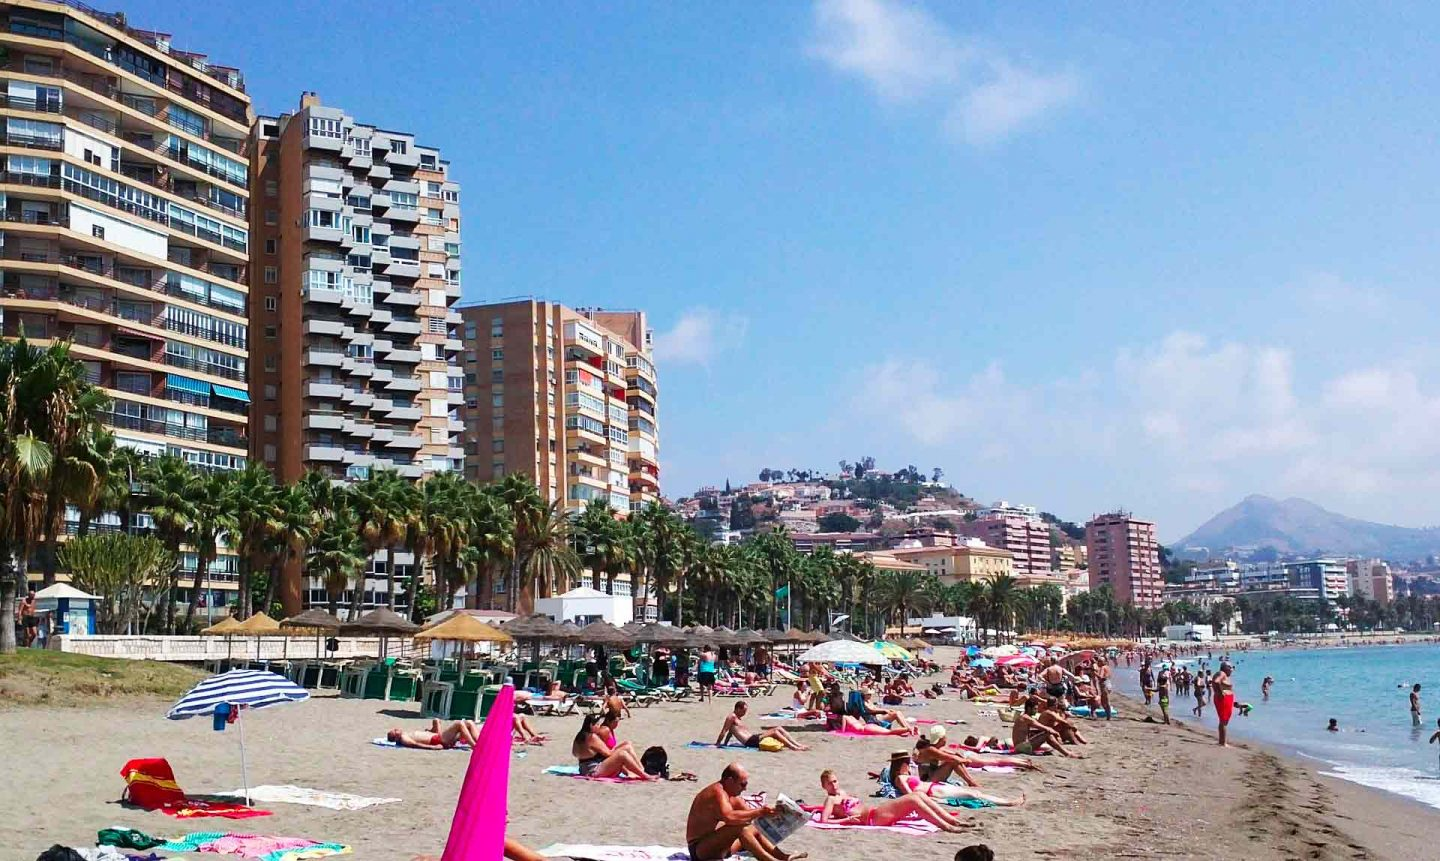 beach close to Malaga city centre